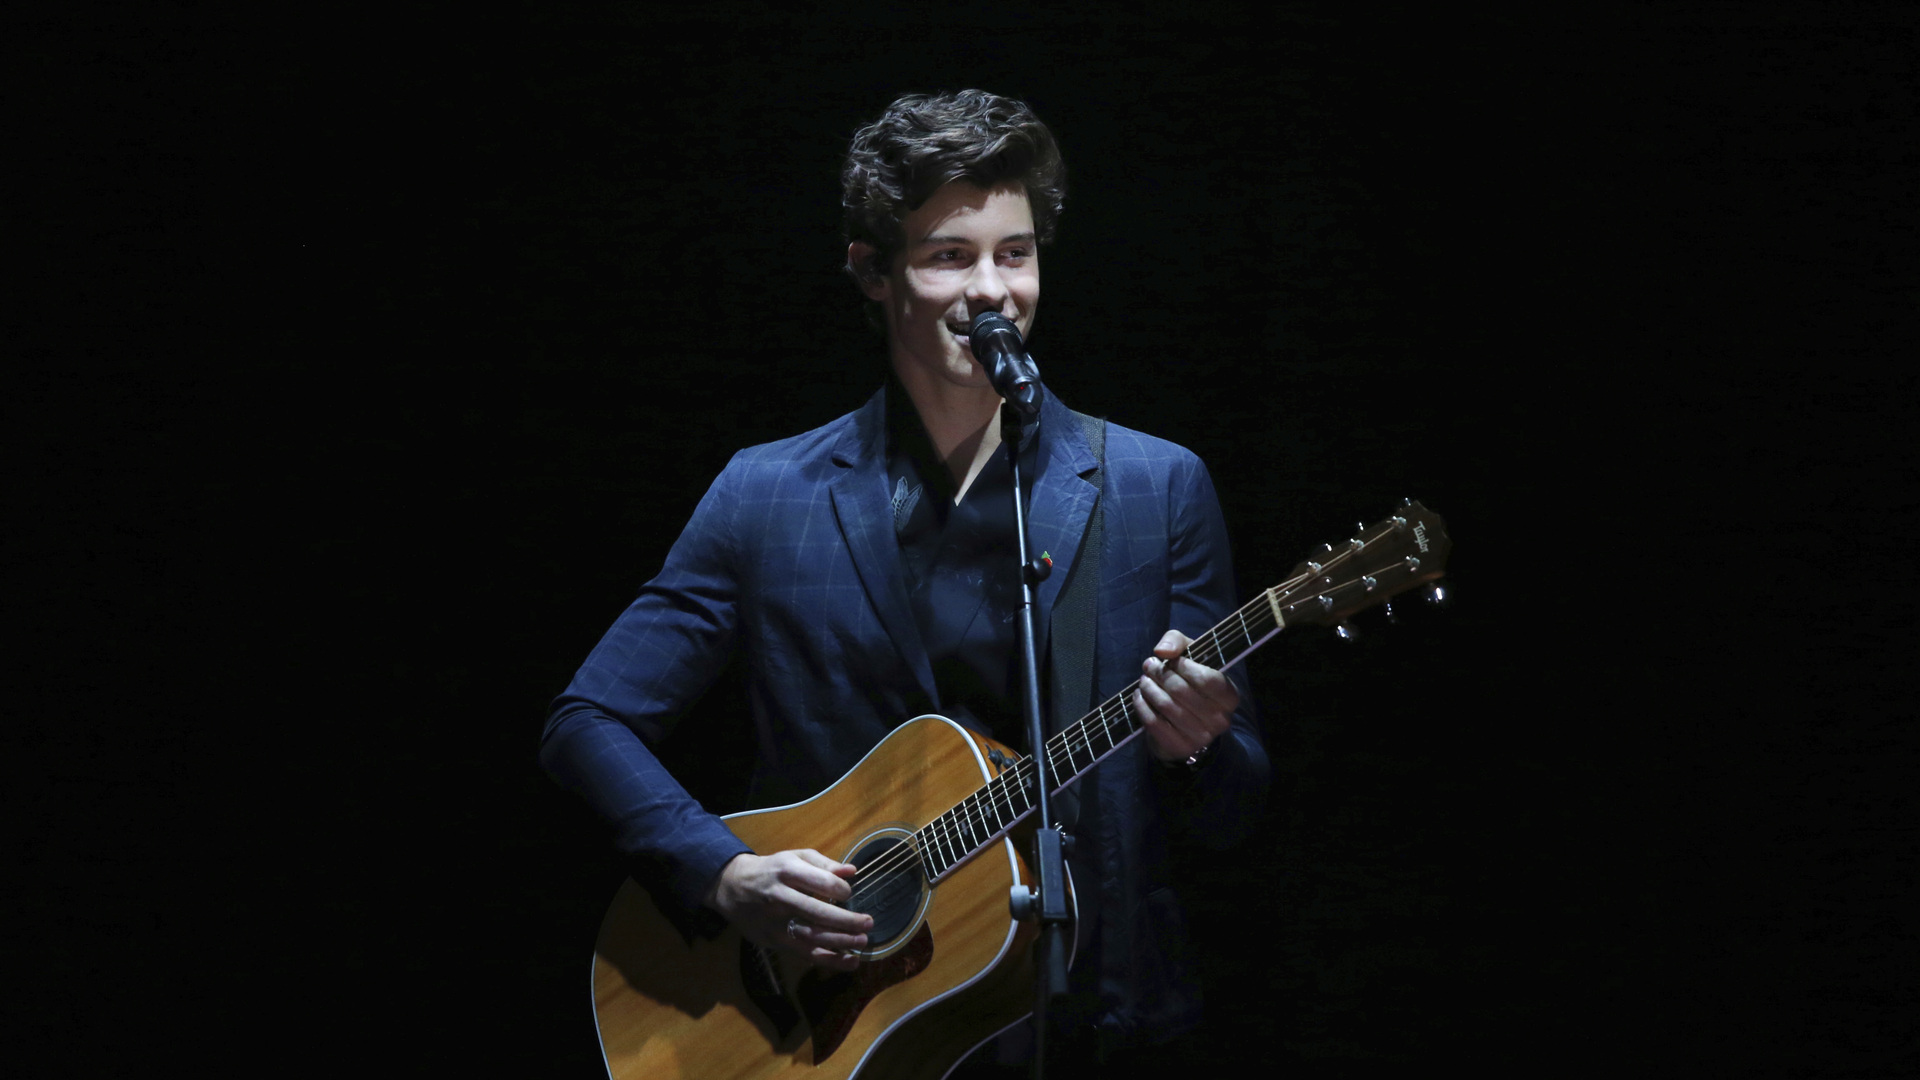 1920x1080 Shawn Mendes Laptop Full HD 1080P HD 4k Wallpapers, Images, Backgrounds, Photos and